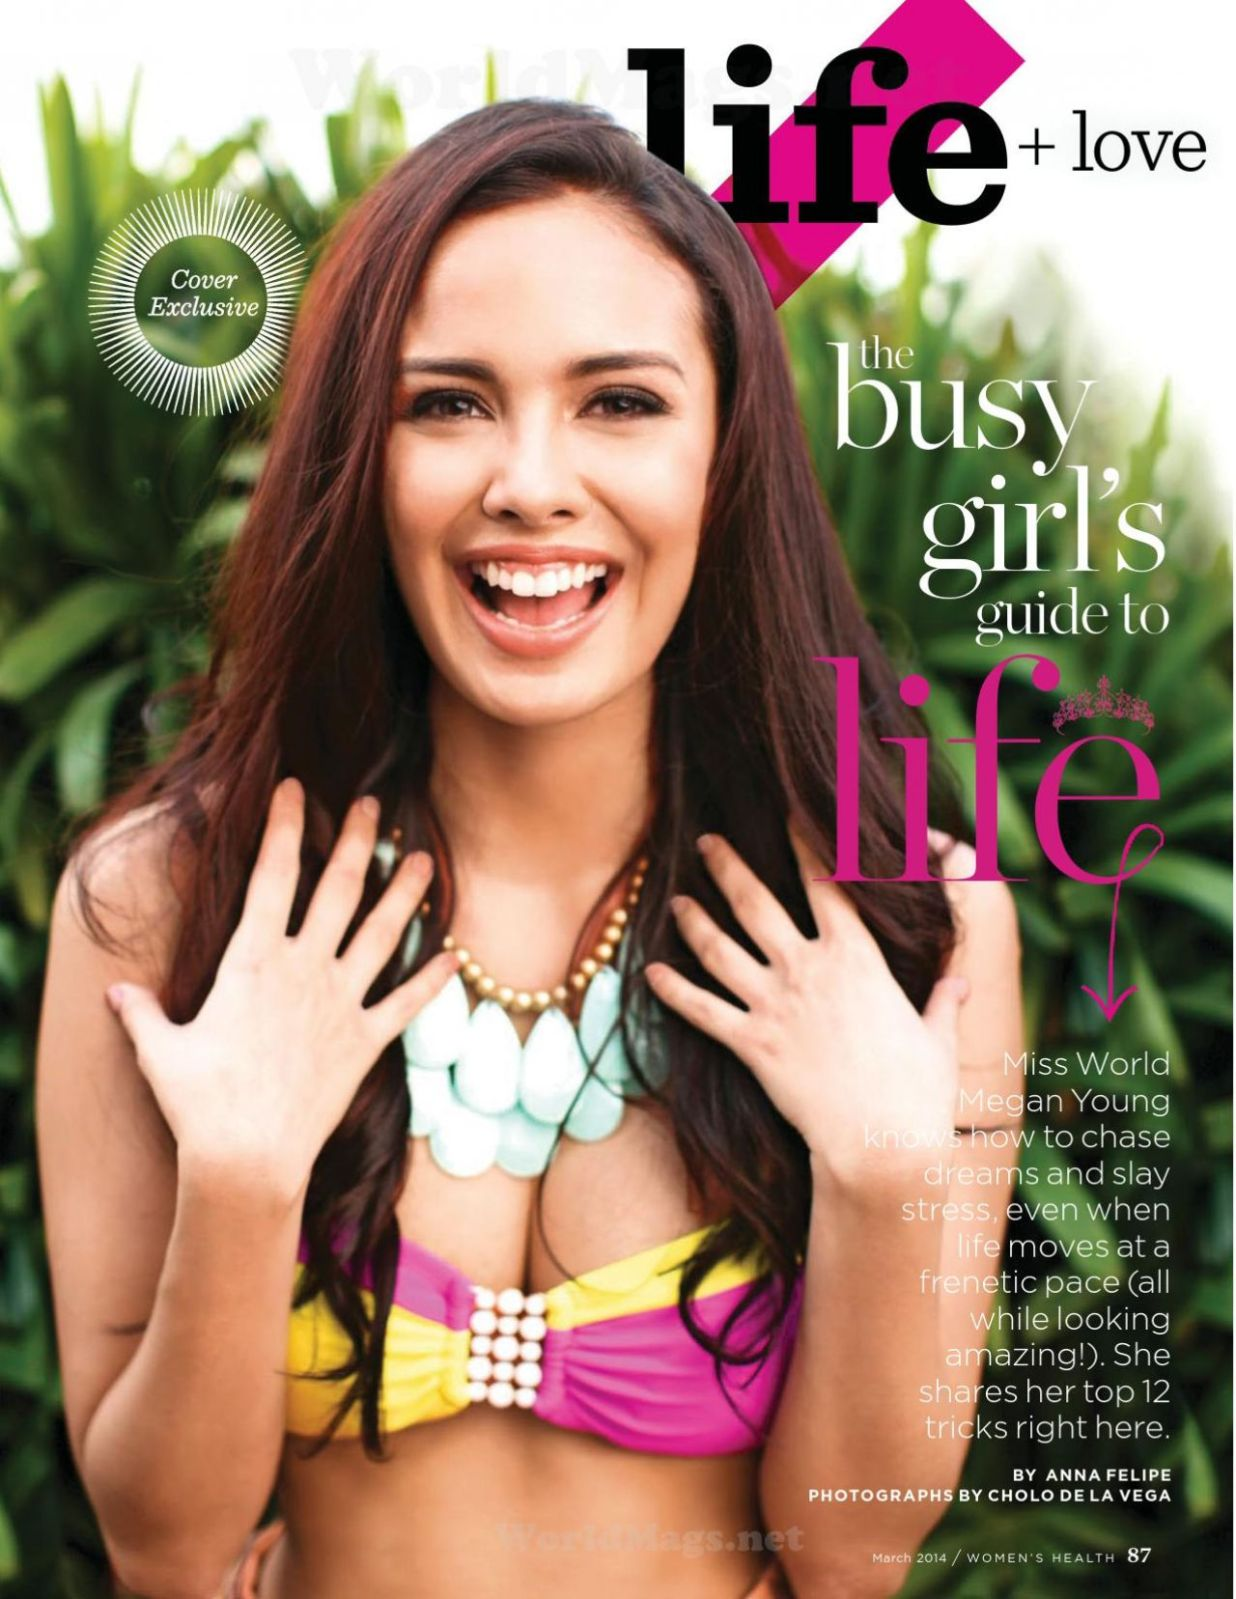 megan young, miss world 2013. - Página 6 Op4qi8